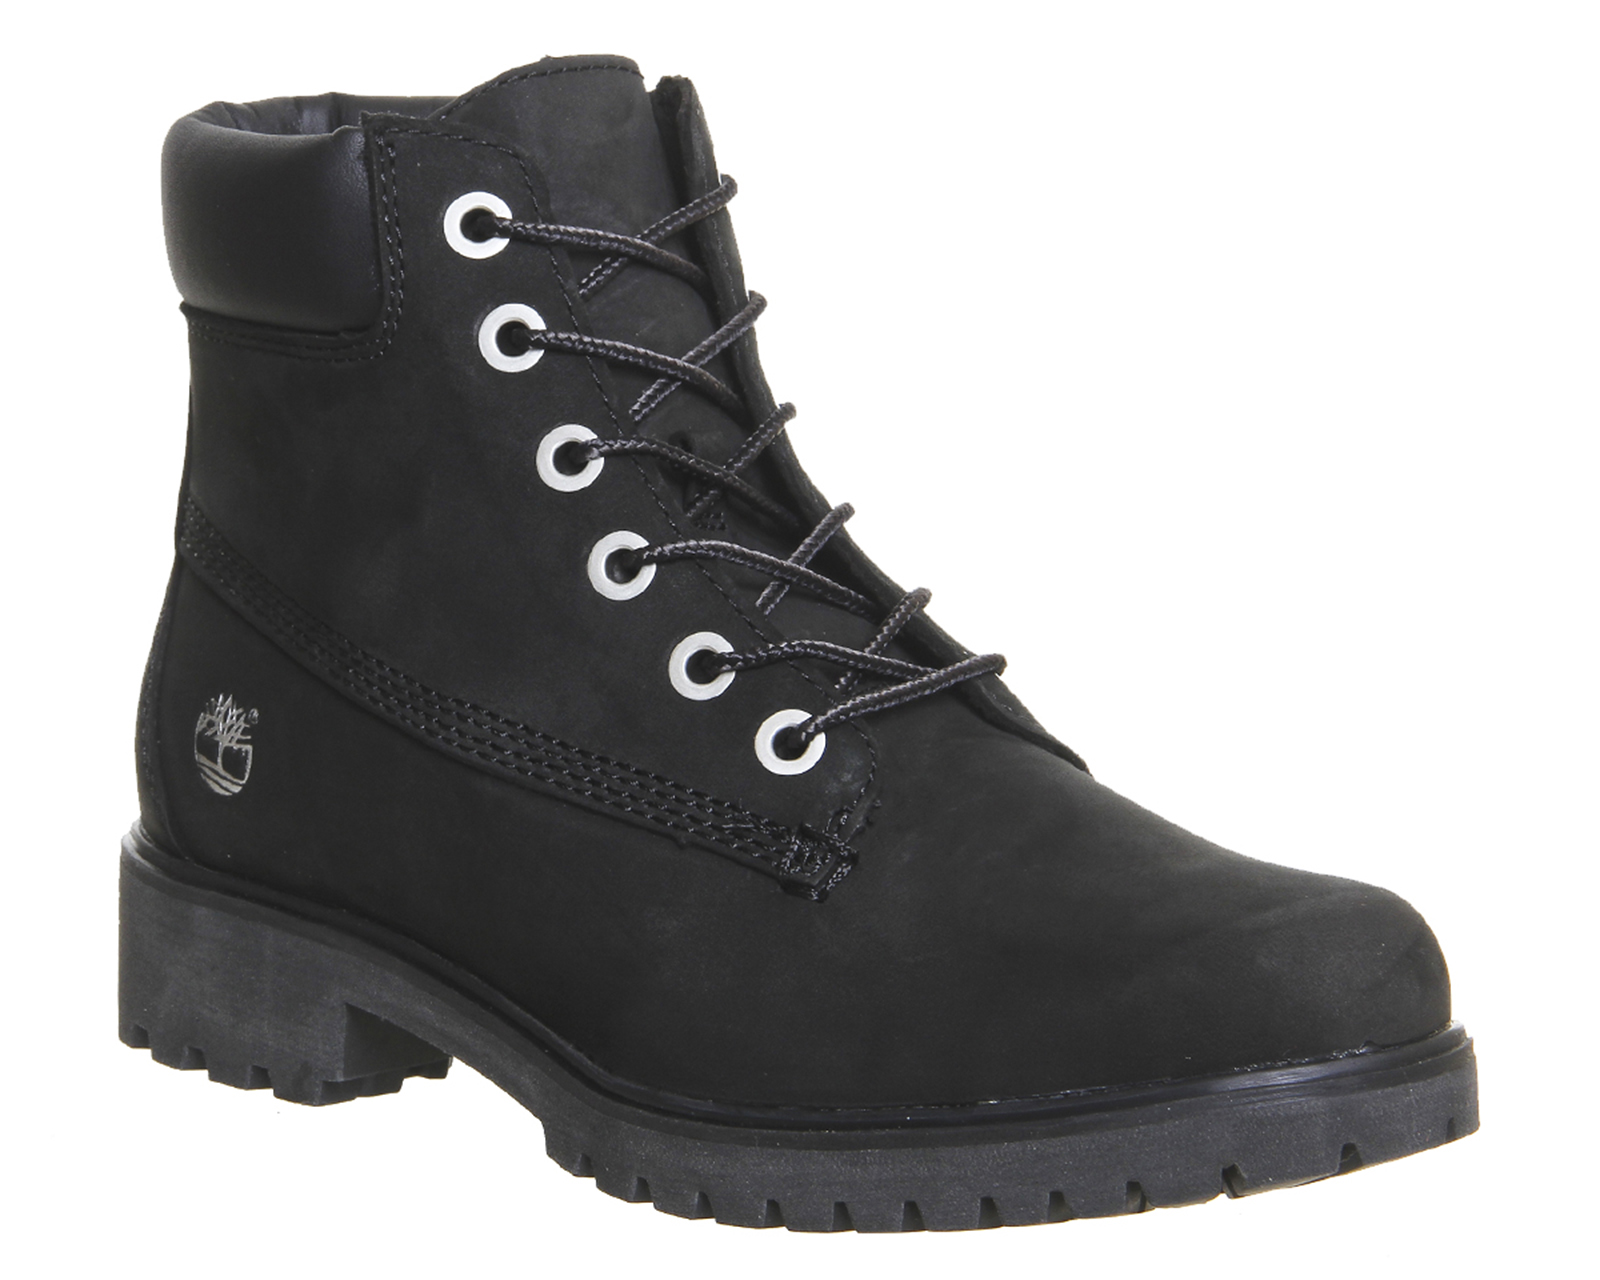 Timberland Icon 6in Premium Waterproof Women's Boots Black